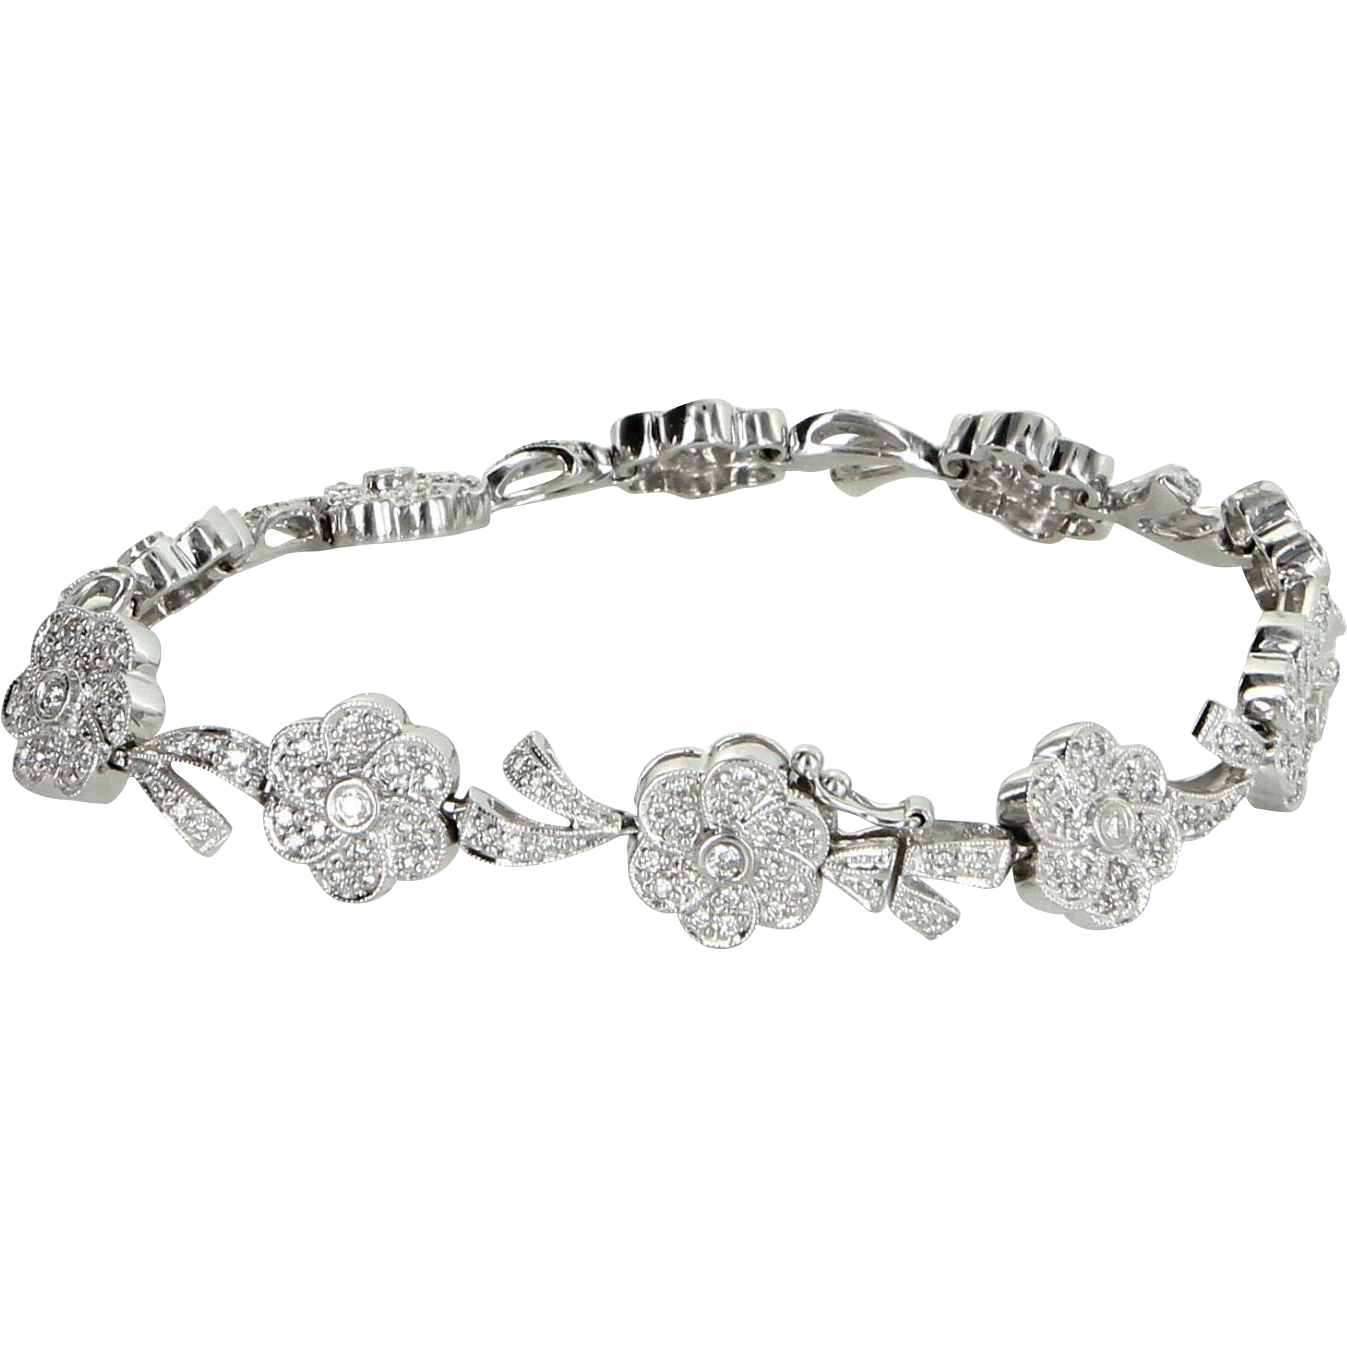 1.20ct Diamond Flower Bracelet Vintage 18 Karat White Gold Estate Fine Jewelry 7 Inch